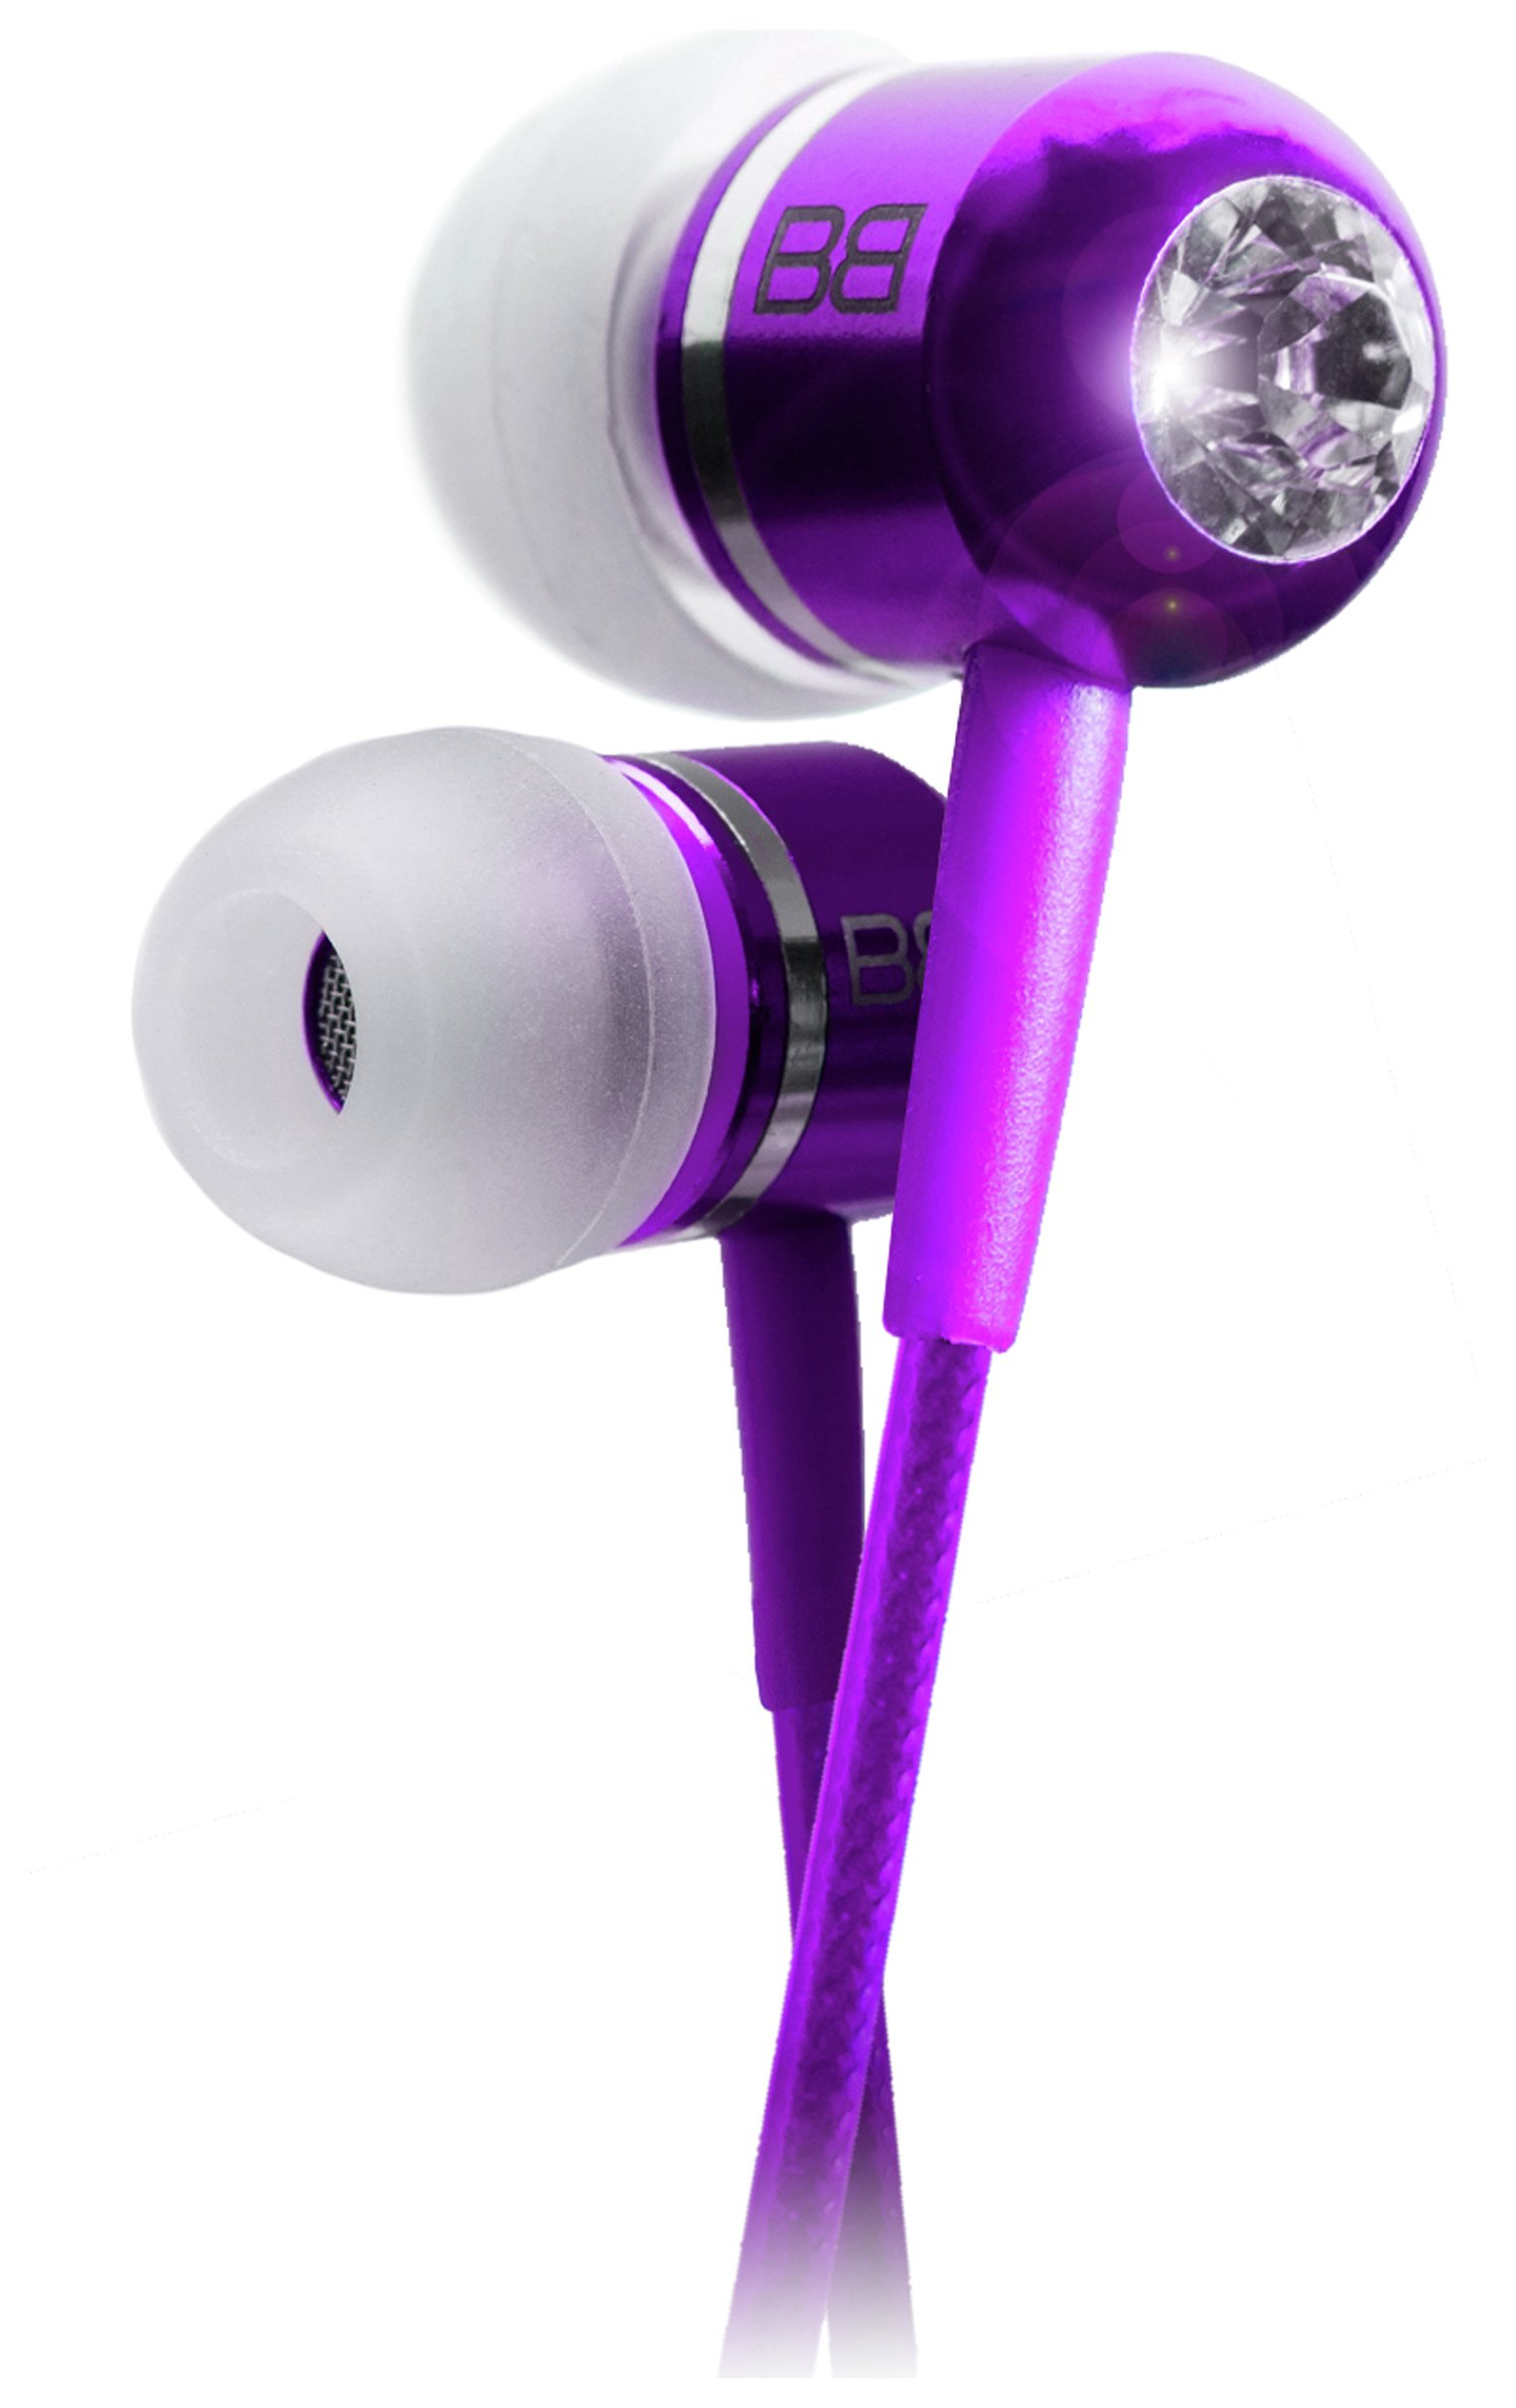 Image of BassBuds In Ear Headphones with MP3 Controller - Purple